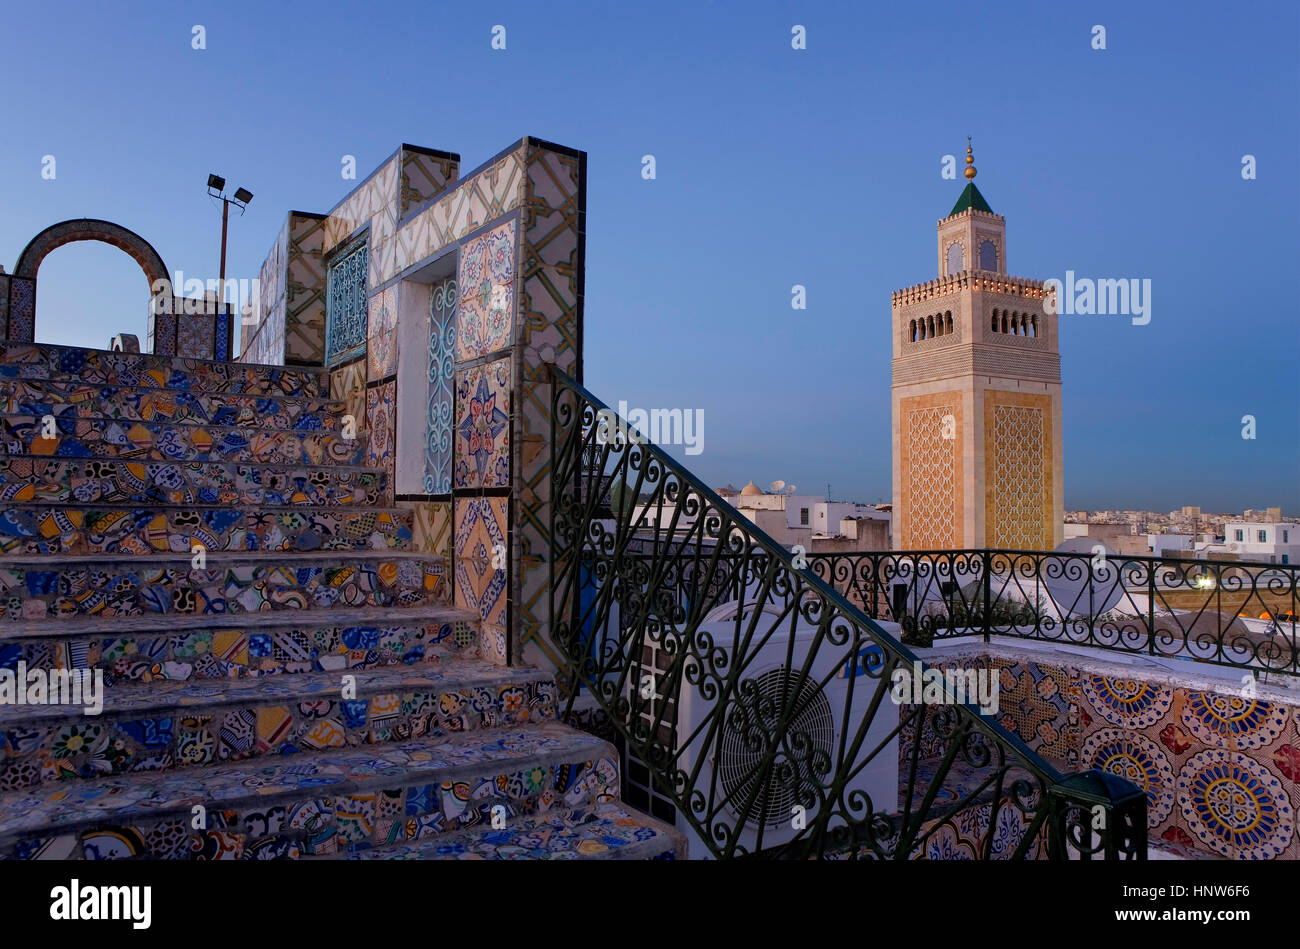 Tunisia: City of Tunis. Ez- Zitouna Mosque (Great Mosque) from a terrace of the medina - Stock Image